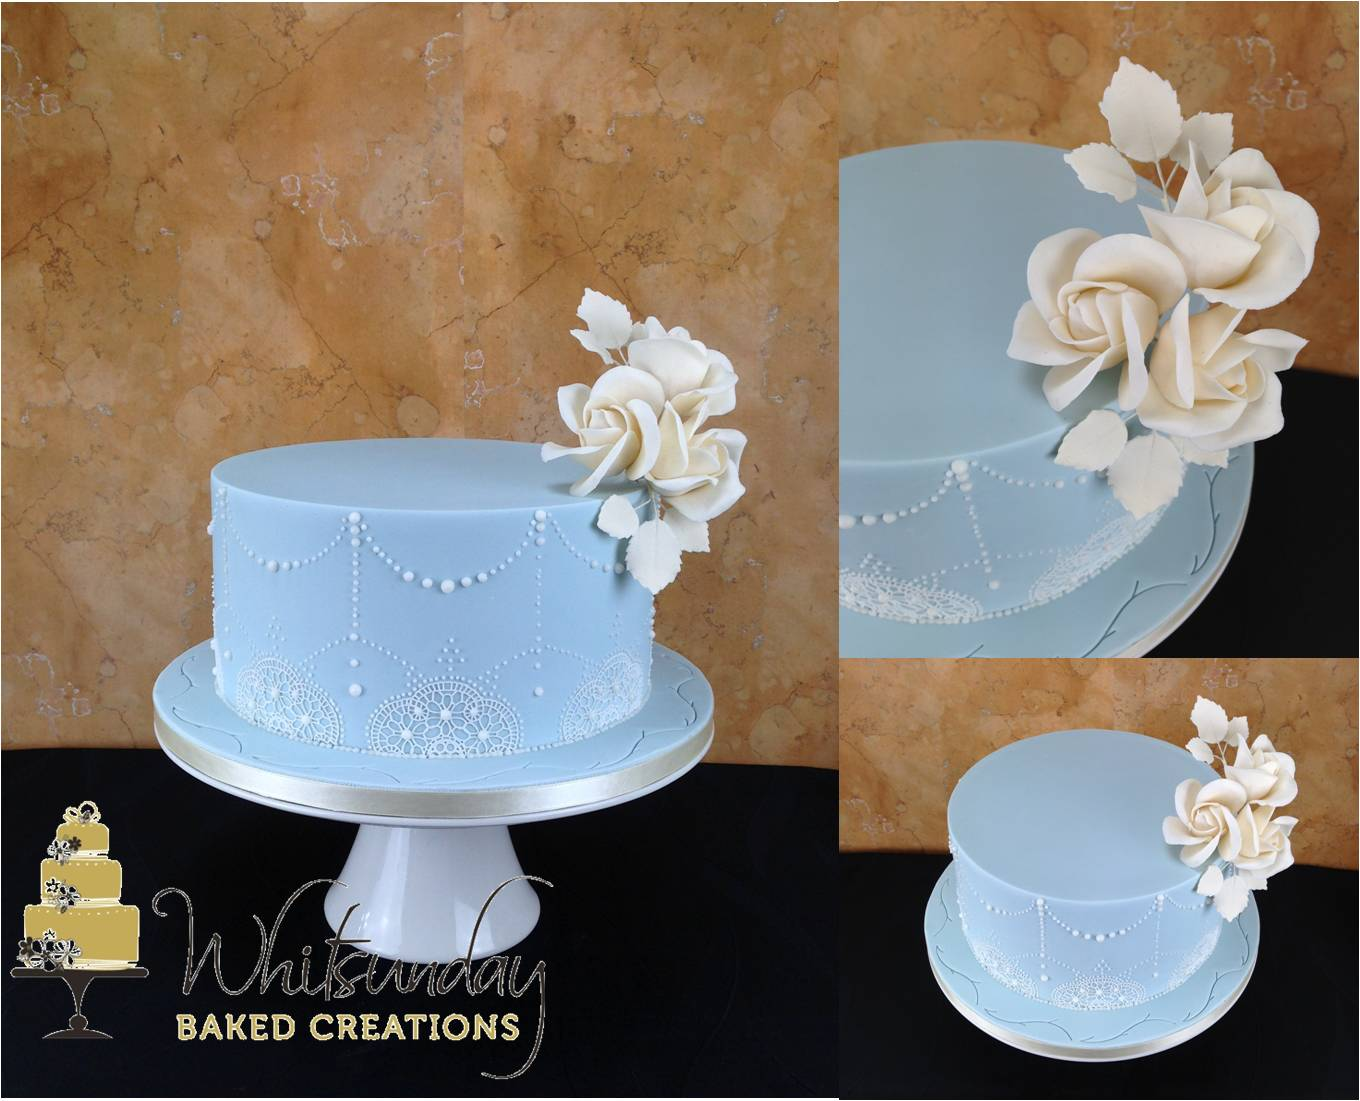 A Selection Of Small Cakes For That Smaller More Intimate Wedding Or Elopement